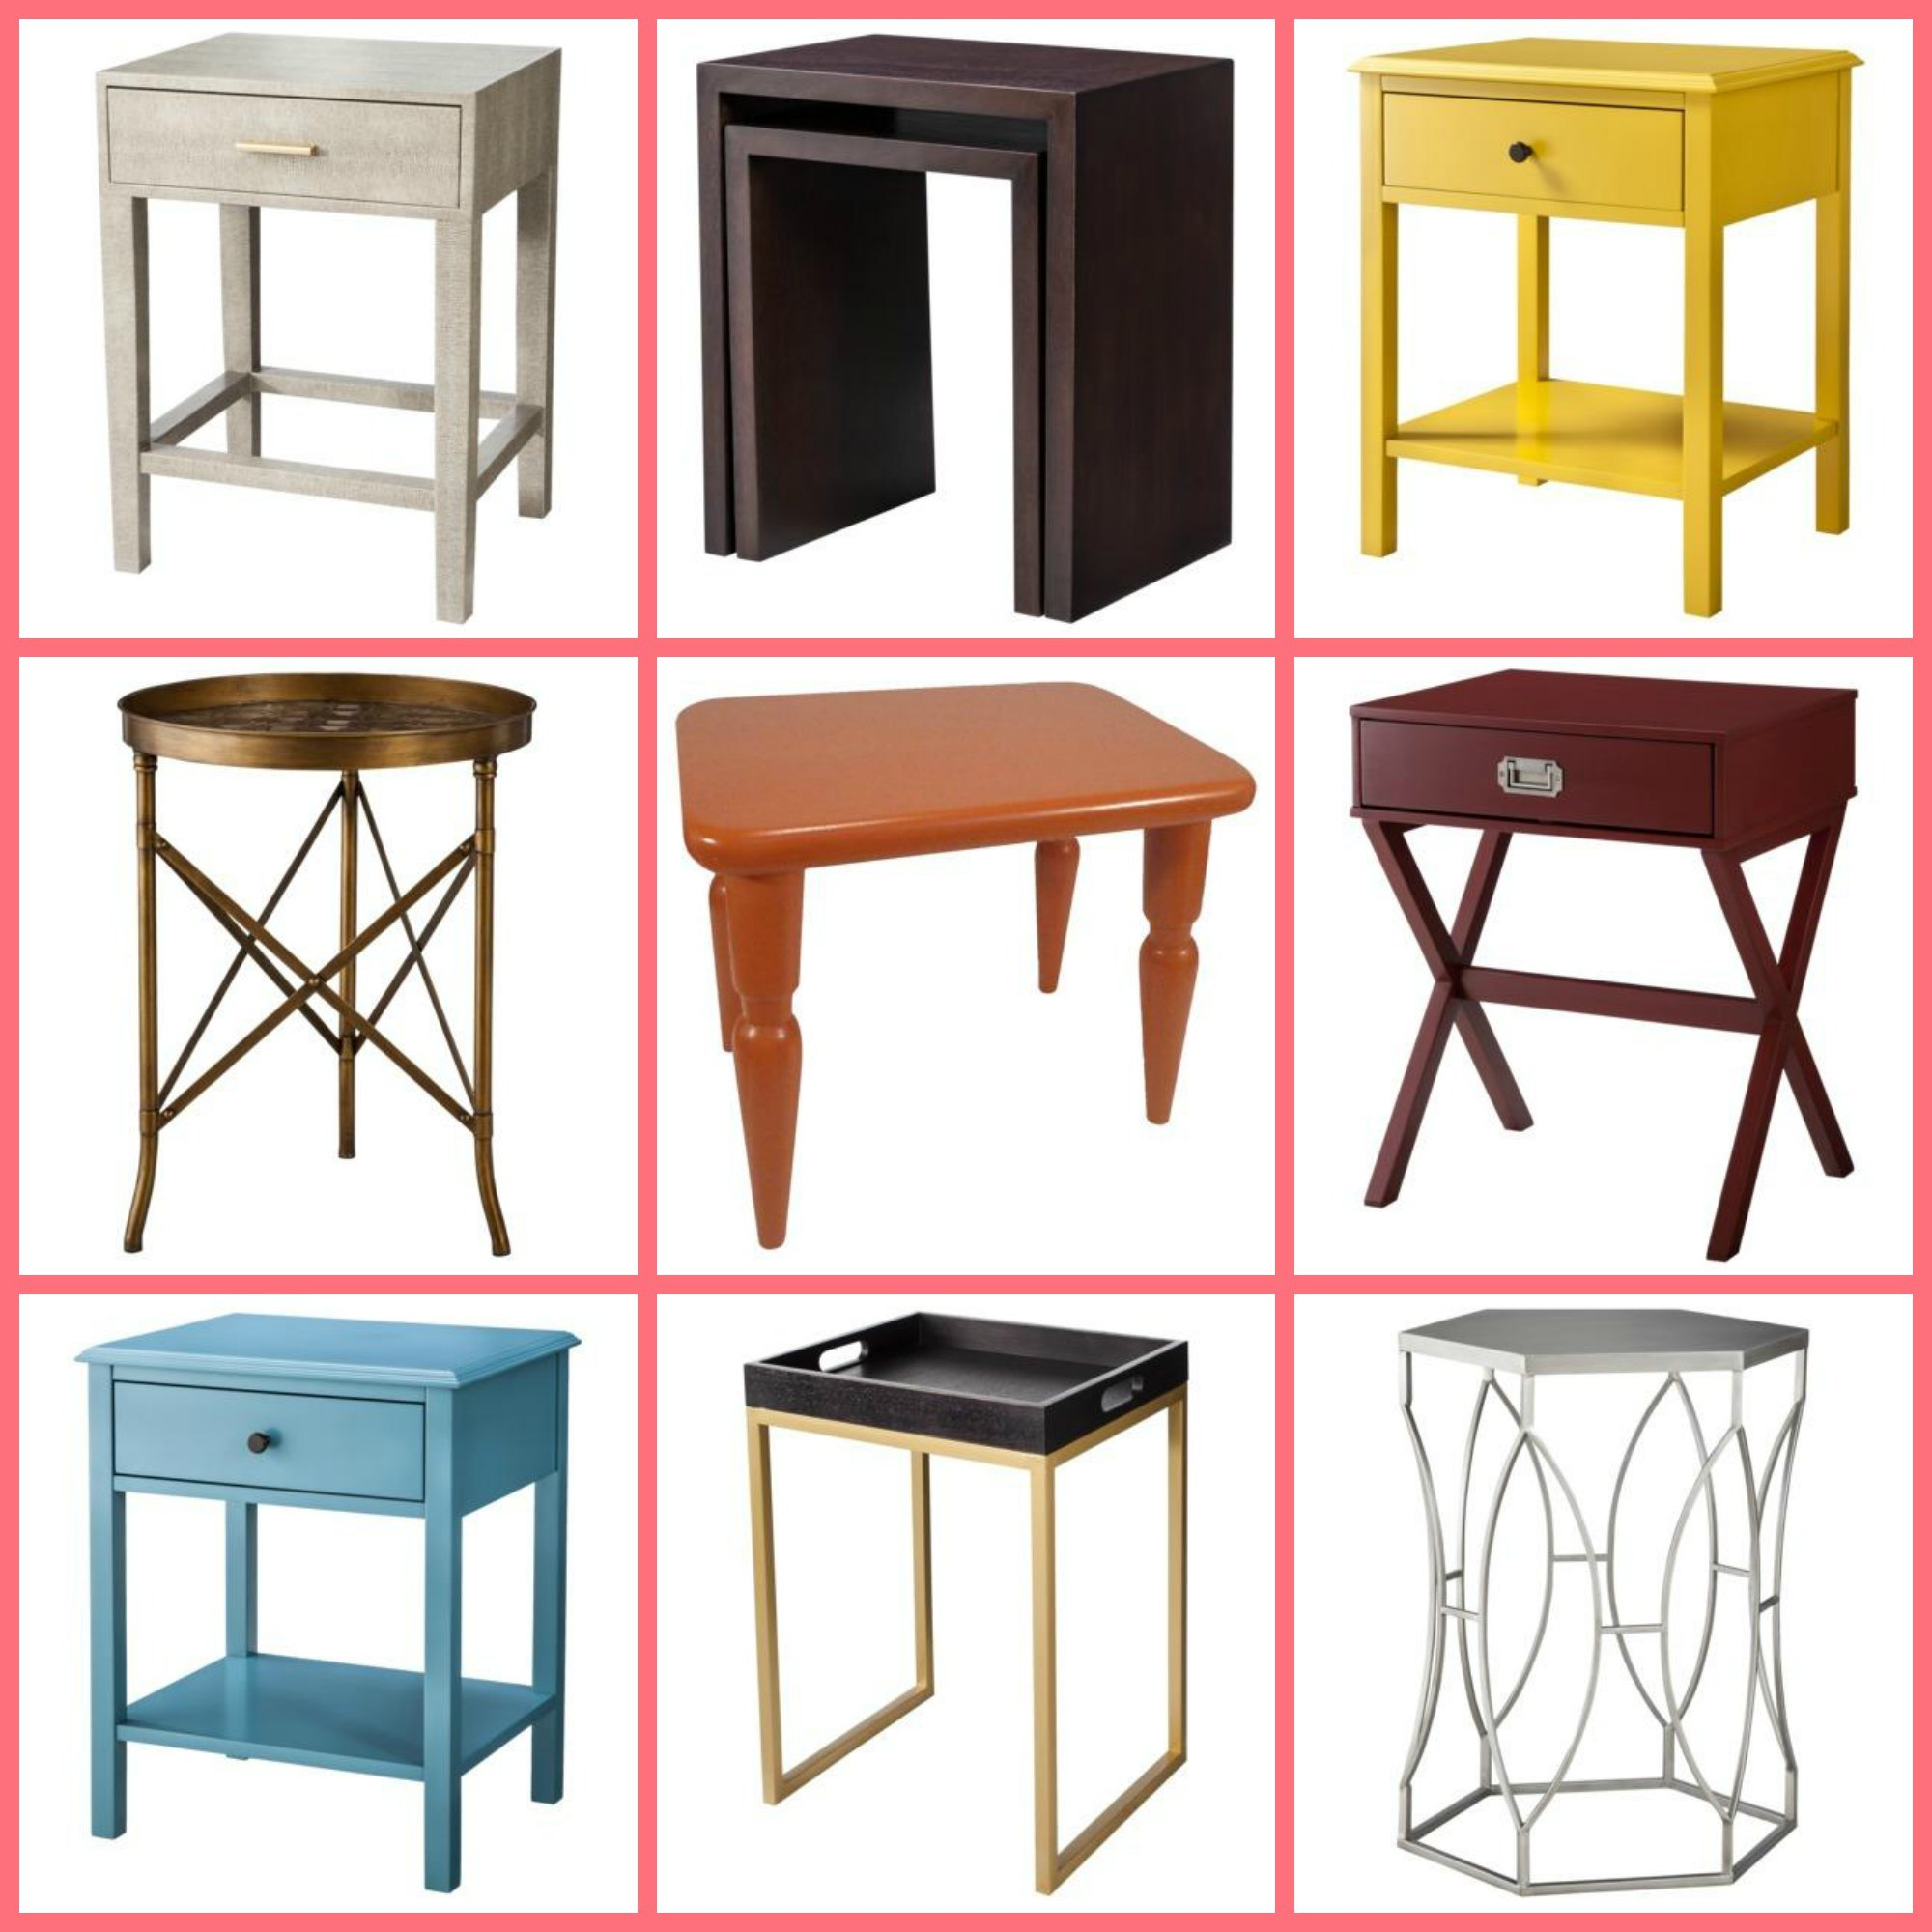 target threshold accent tables take your targertthr table clockwise from top left nic with cooler one drawer linens solid hardwood end ergonomic furniture entry room tray set